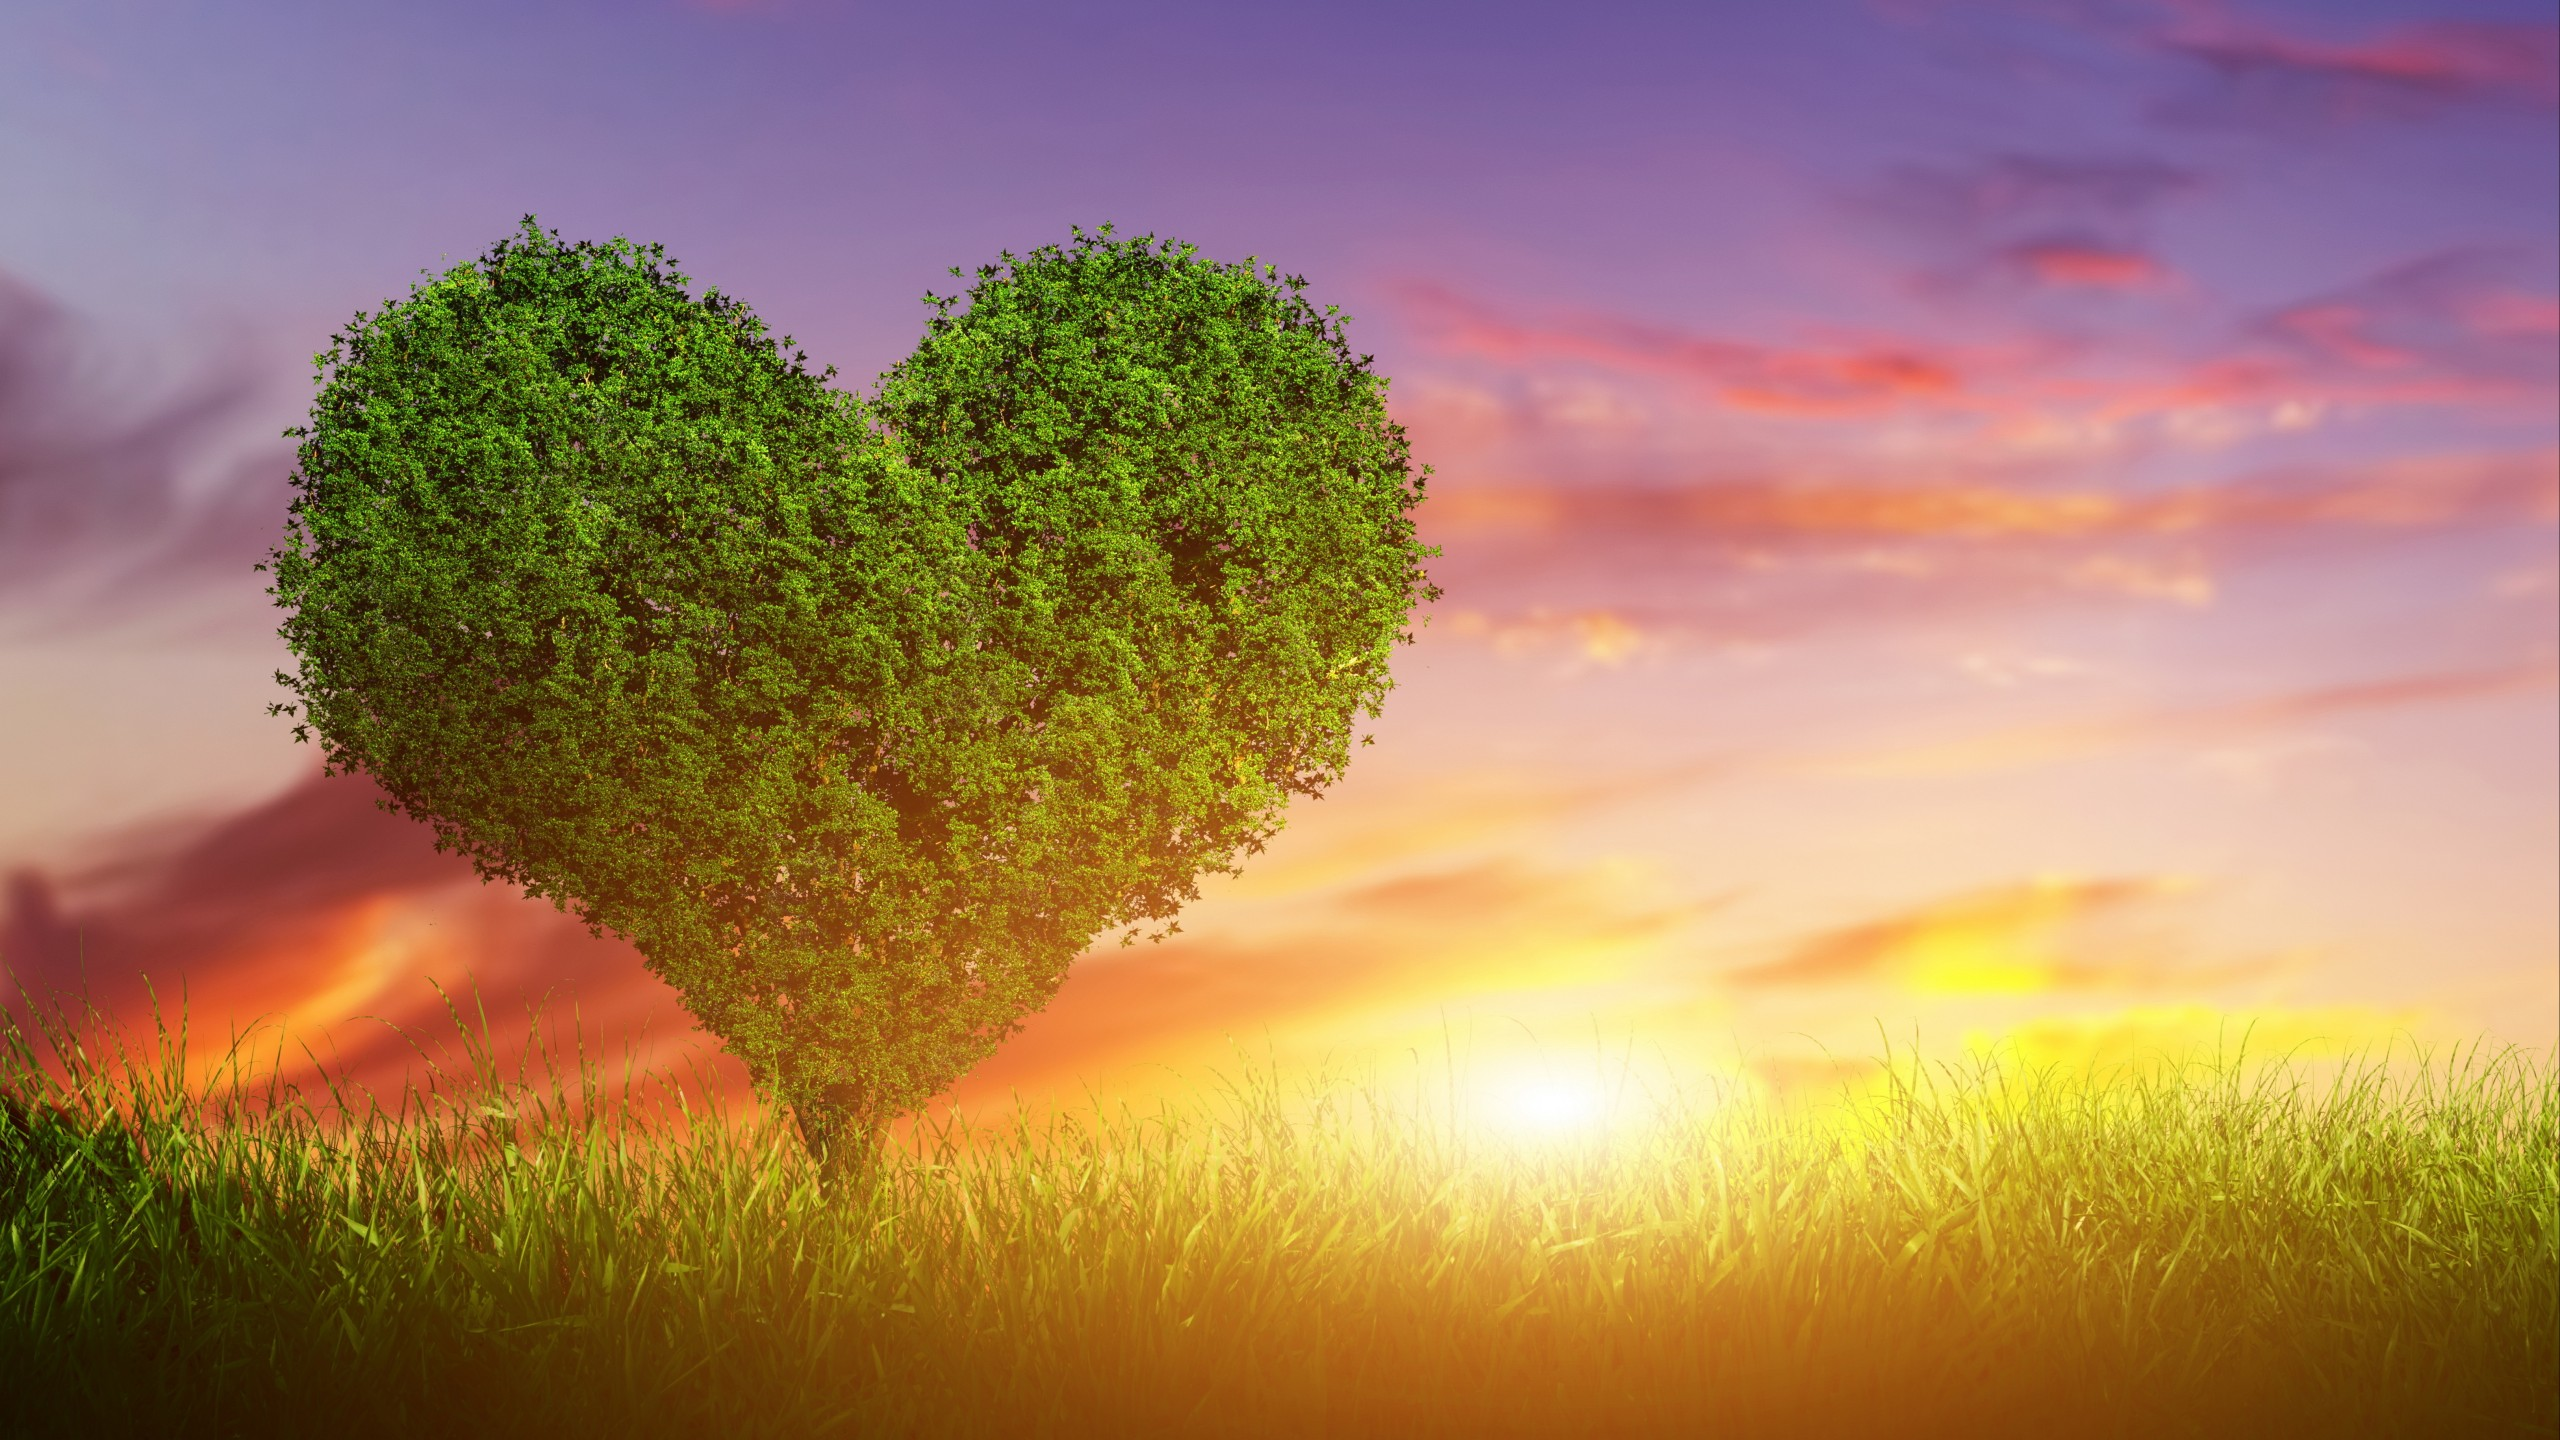 Stock Images Love Image, Heart, Tree, 5k, Stock Images #14863